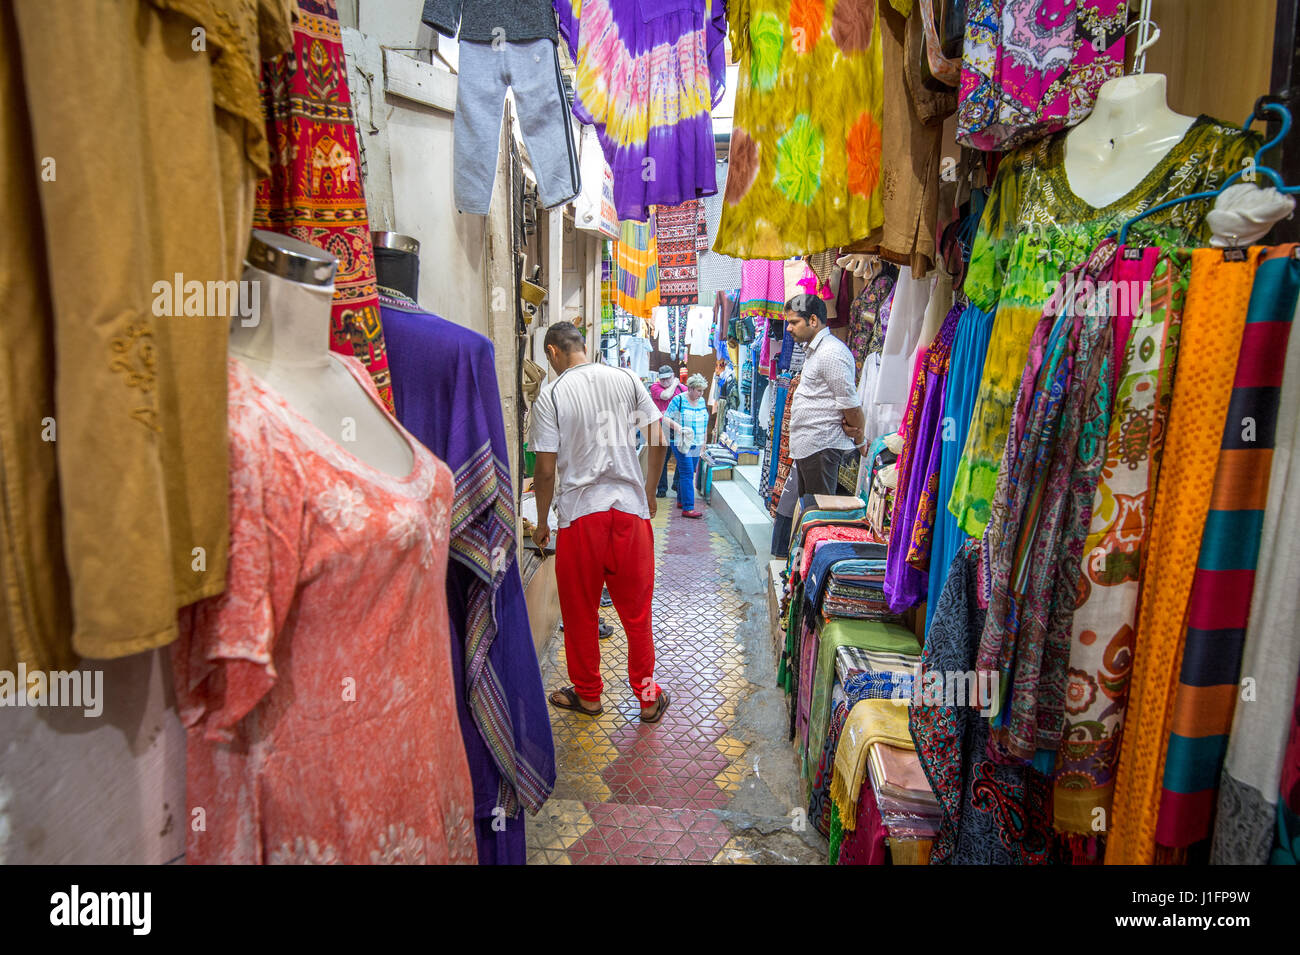 Muscat, Oman - Souq Muttrah People shopping in close quarters in